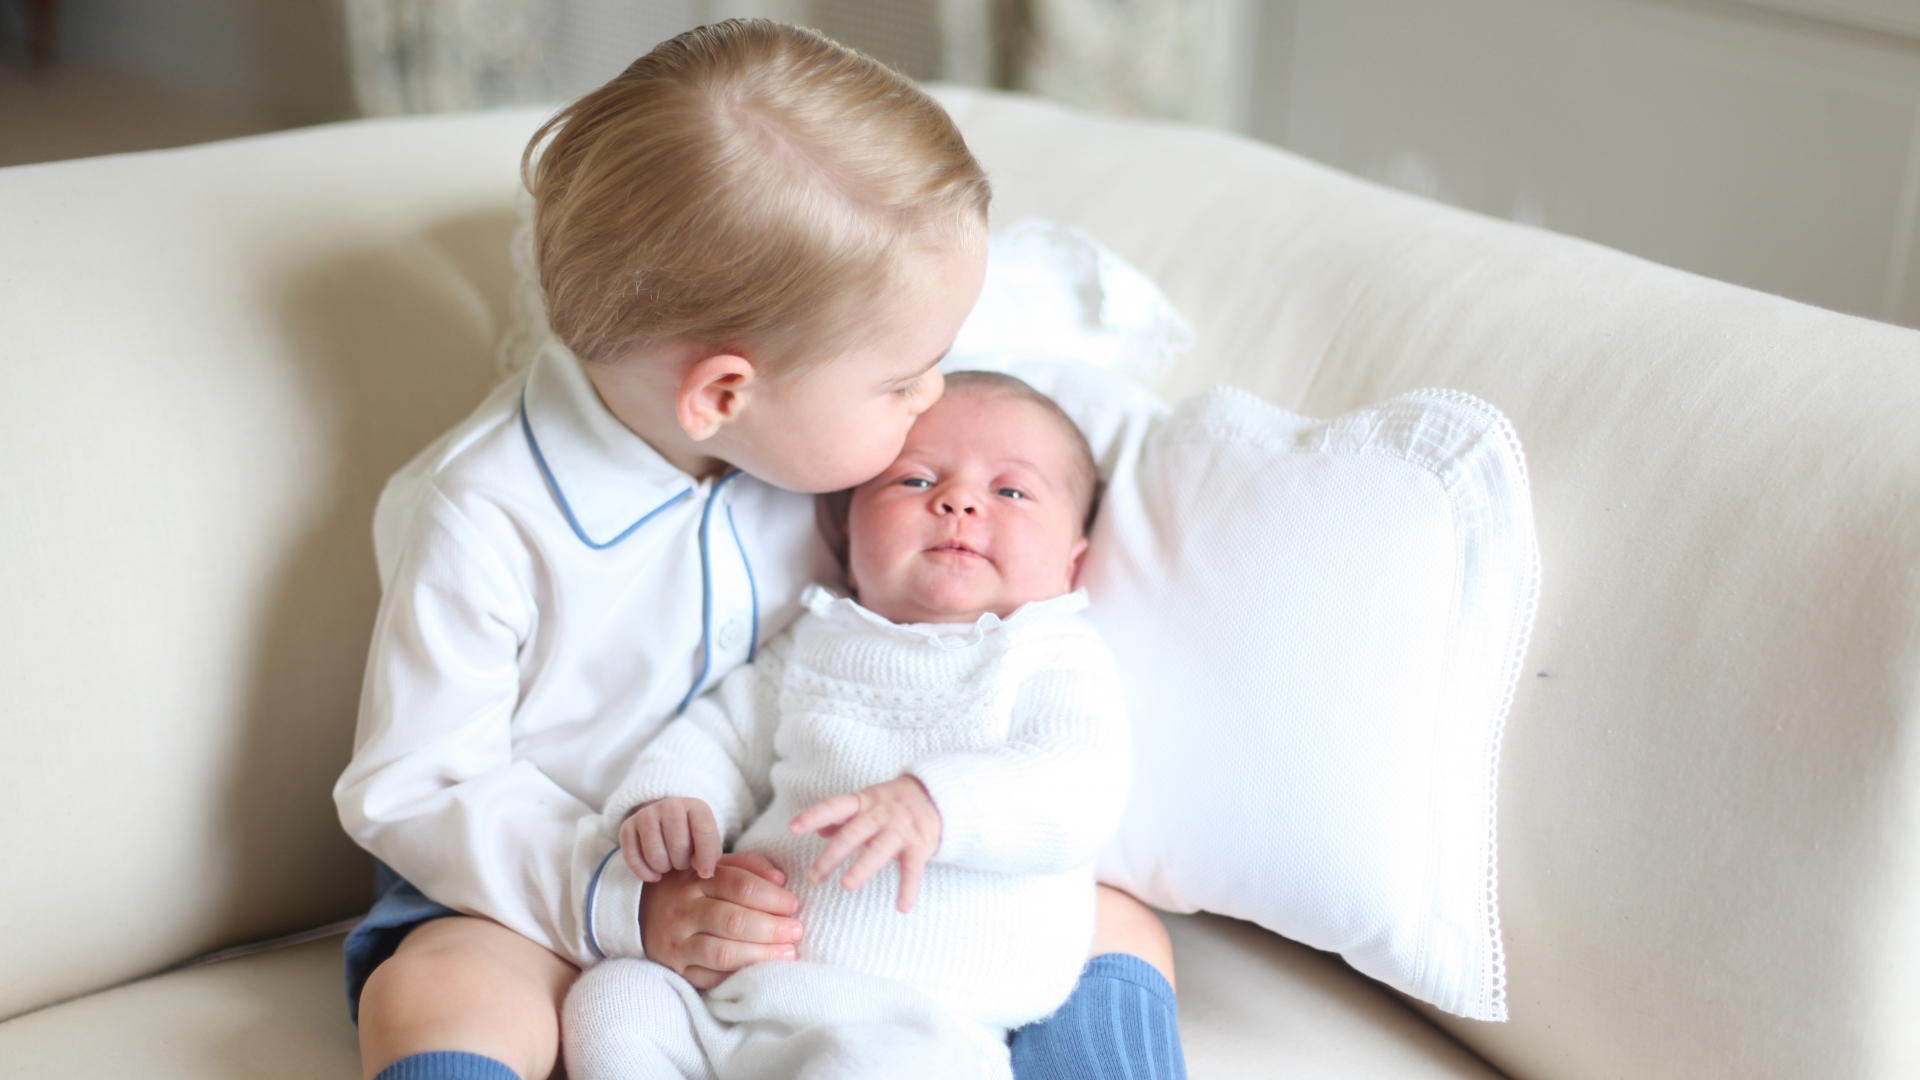 Prince George and Princess Charlotte at Anmer Hall in mid-May in Norfolk, England. (Credit: HRH The Duchess of Cambridge/Getty Images)